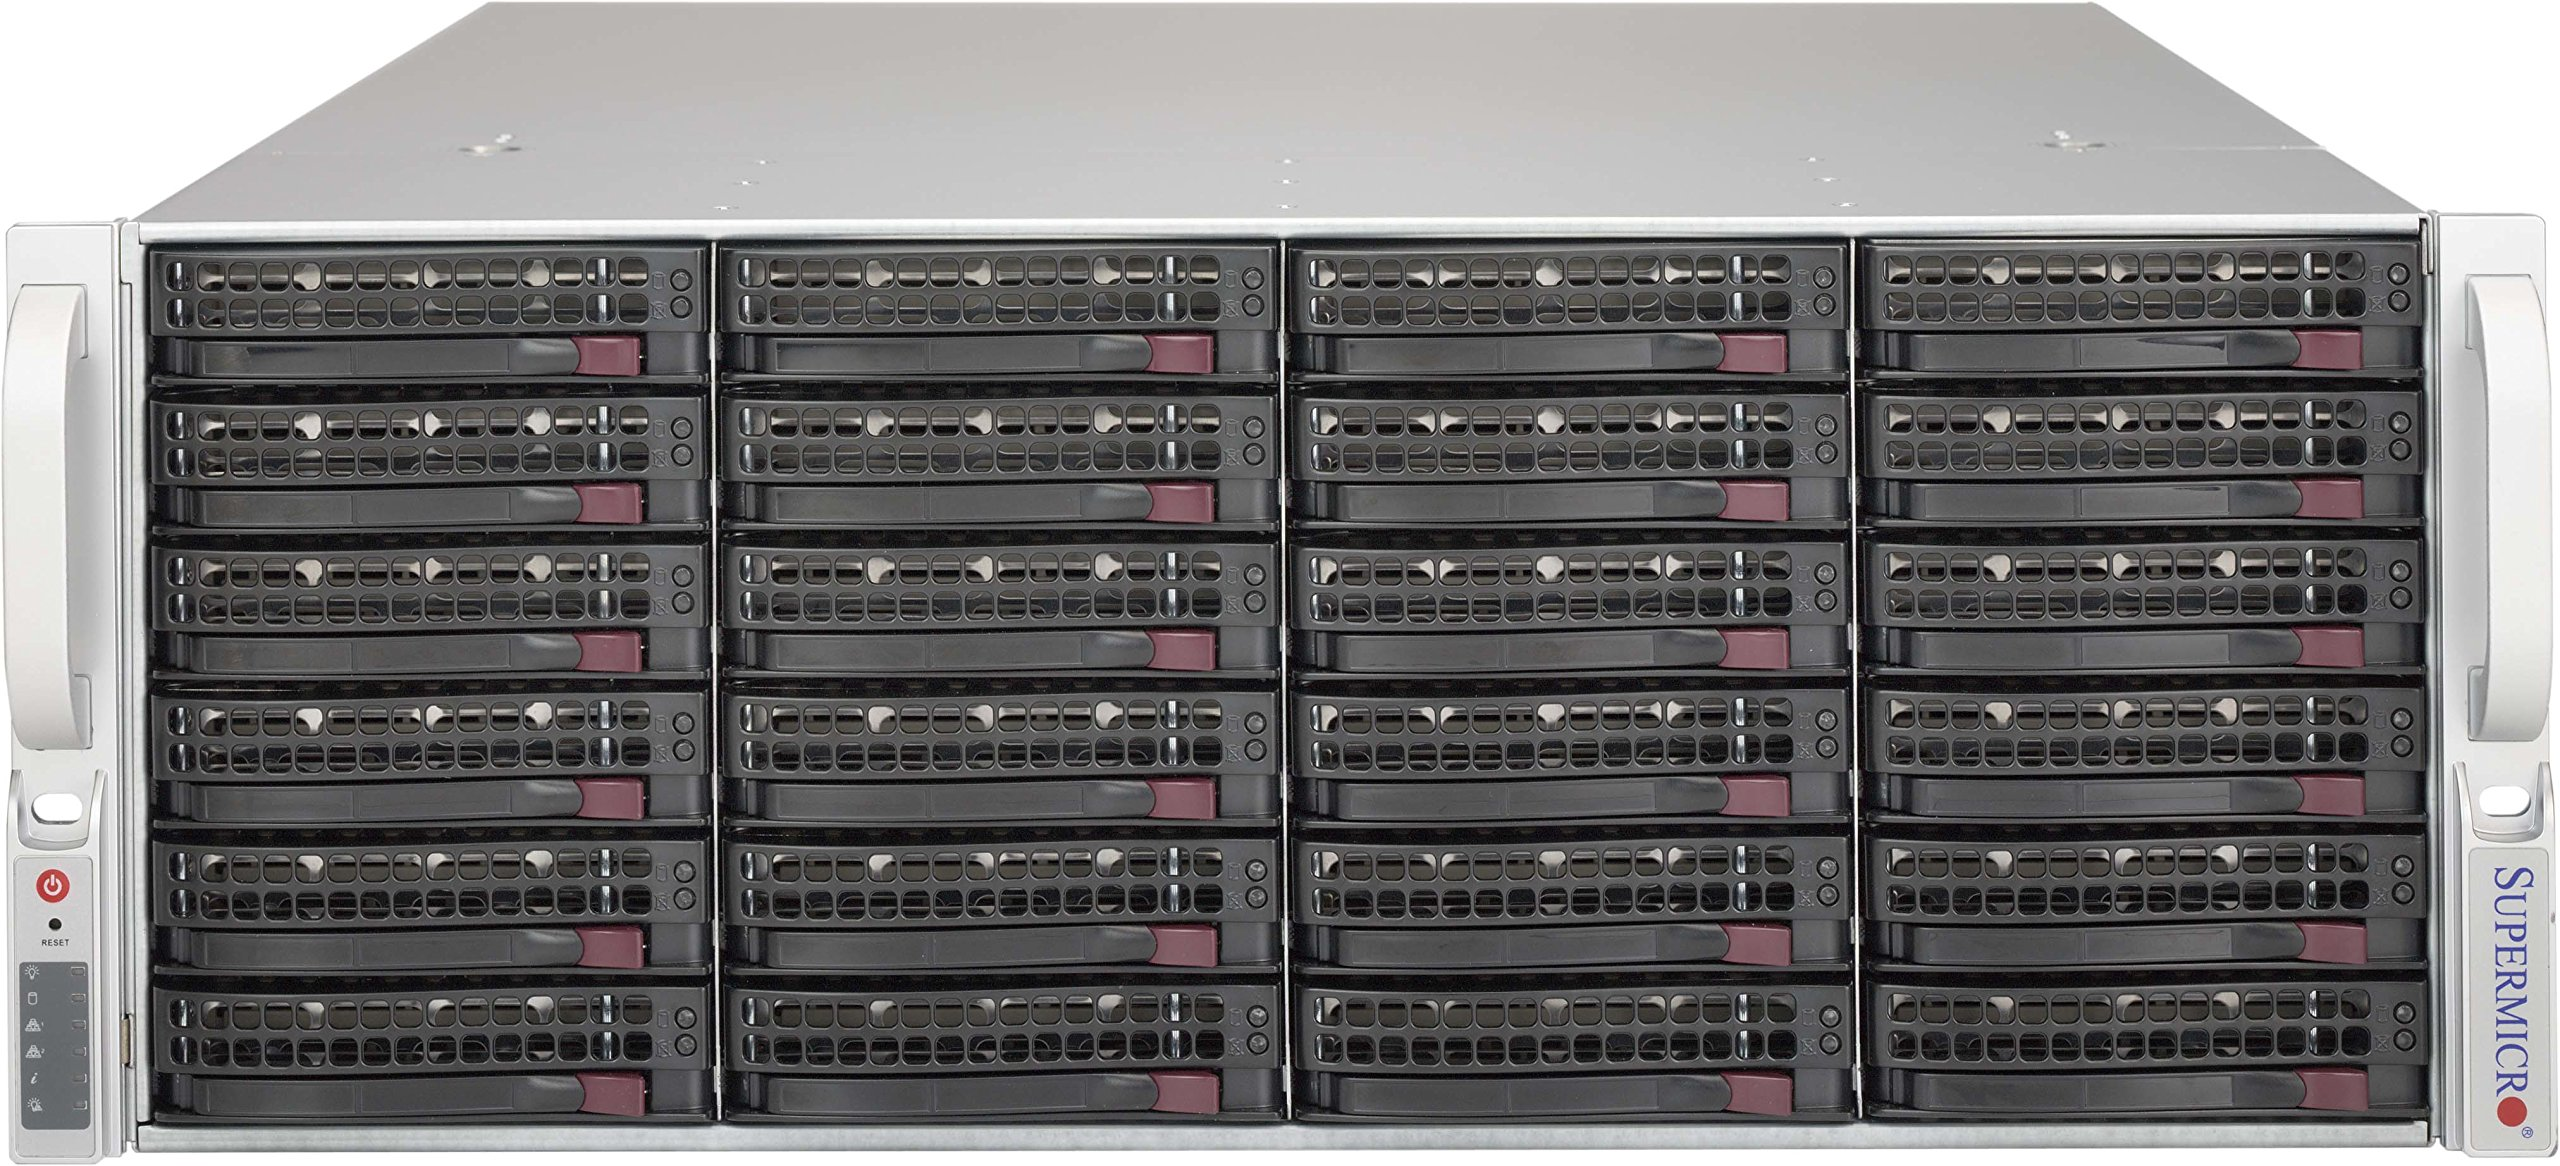 Supermicro Rackmount Server Chassis CSE-846BE1C-R1K28B